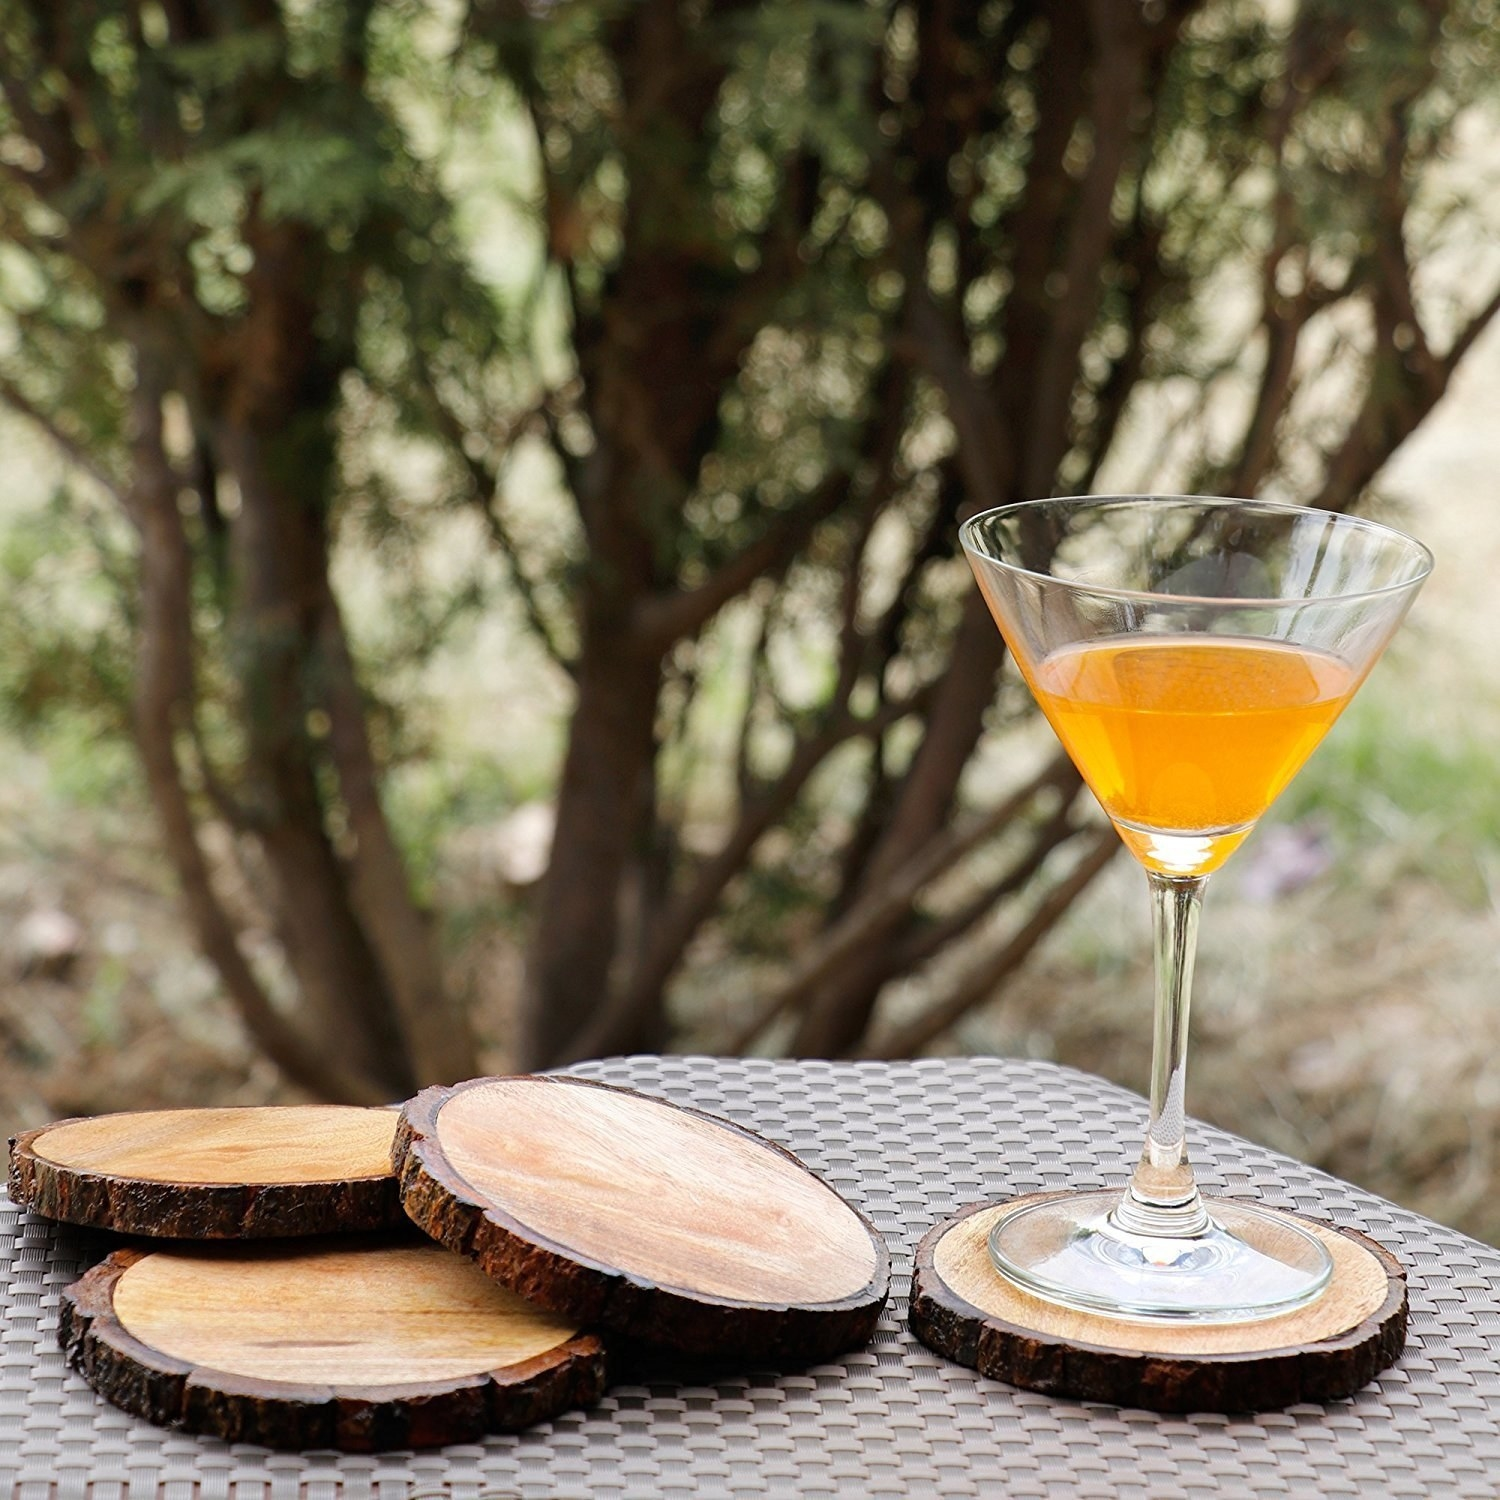 Four wooden bark coasters on an outdoor table. One has a glass with a drink placed on it